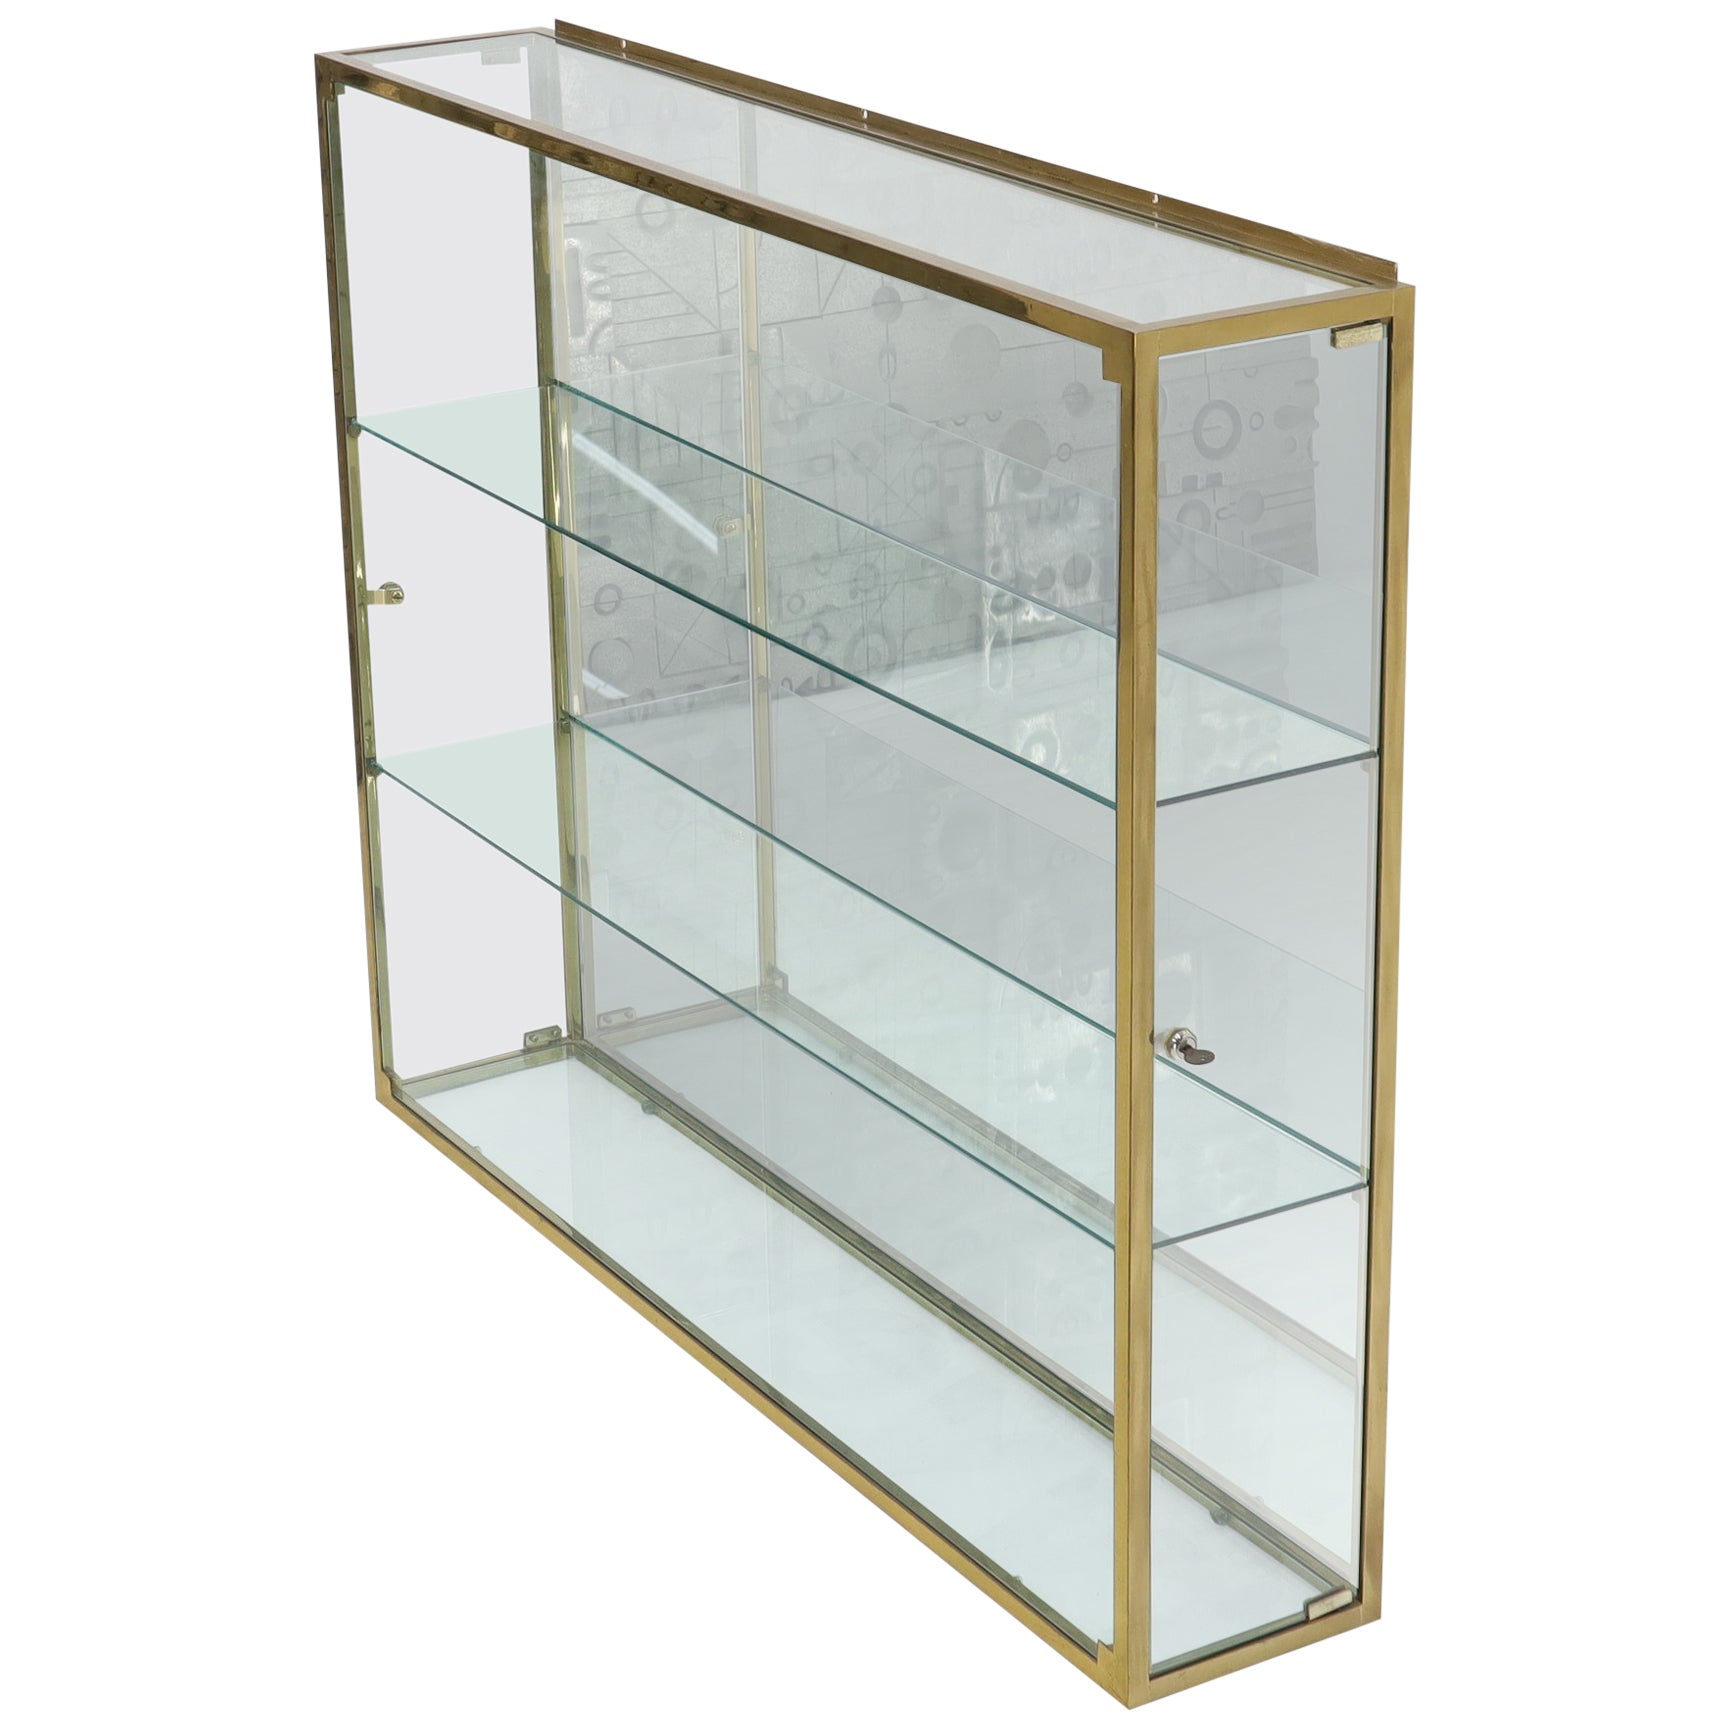 Large Solid Brass Frame Square Hanging Wall Unit Display Case Shelves Unit